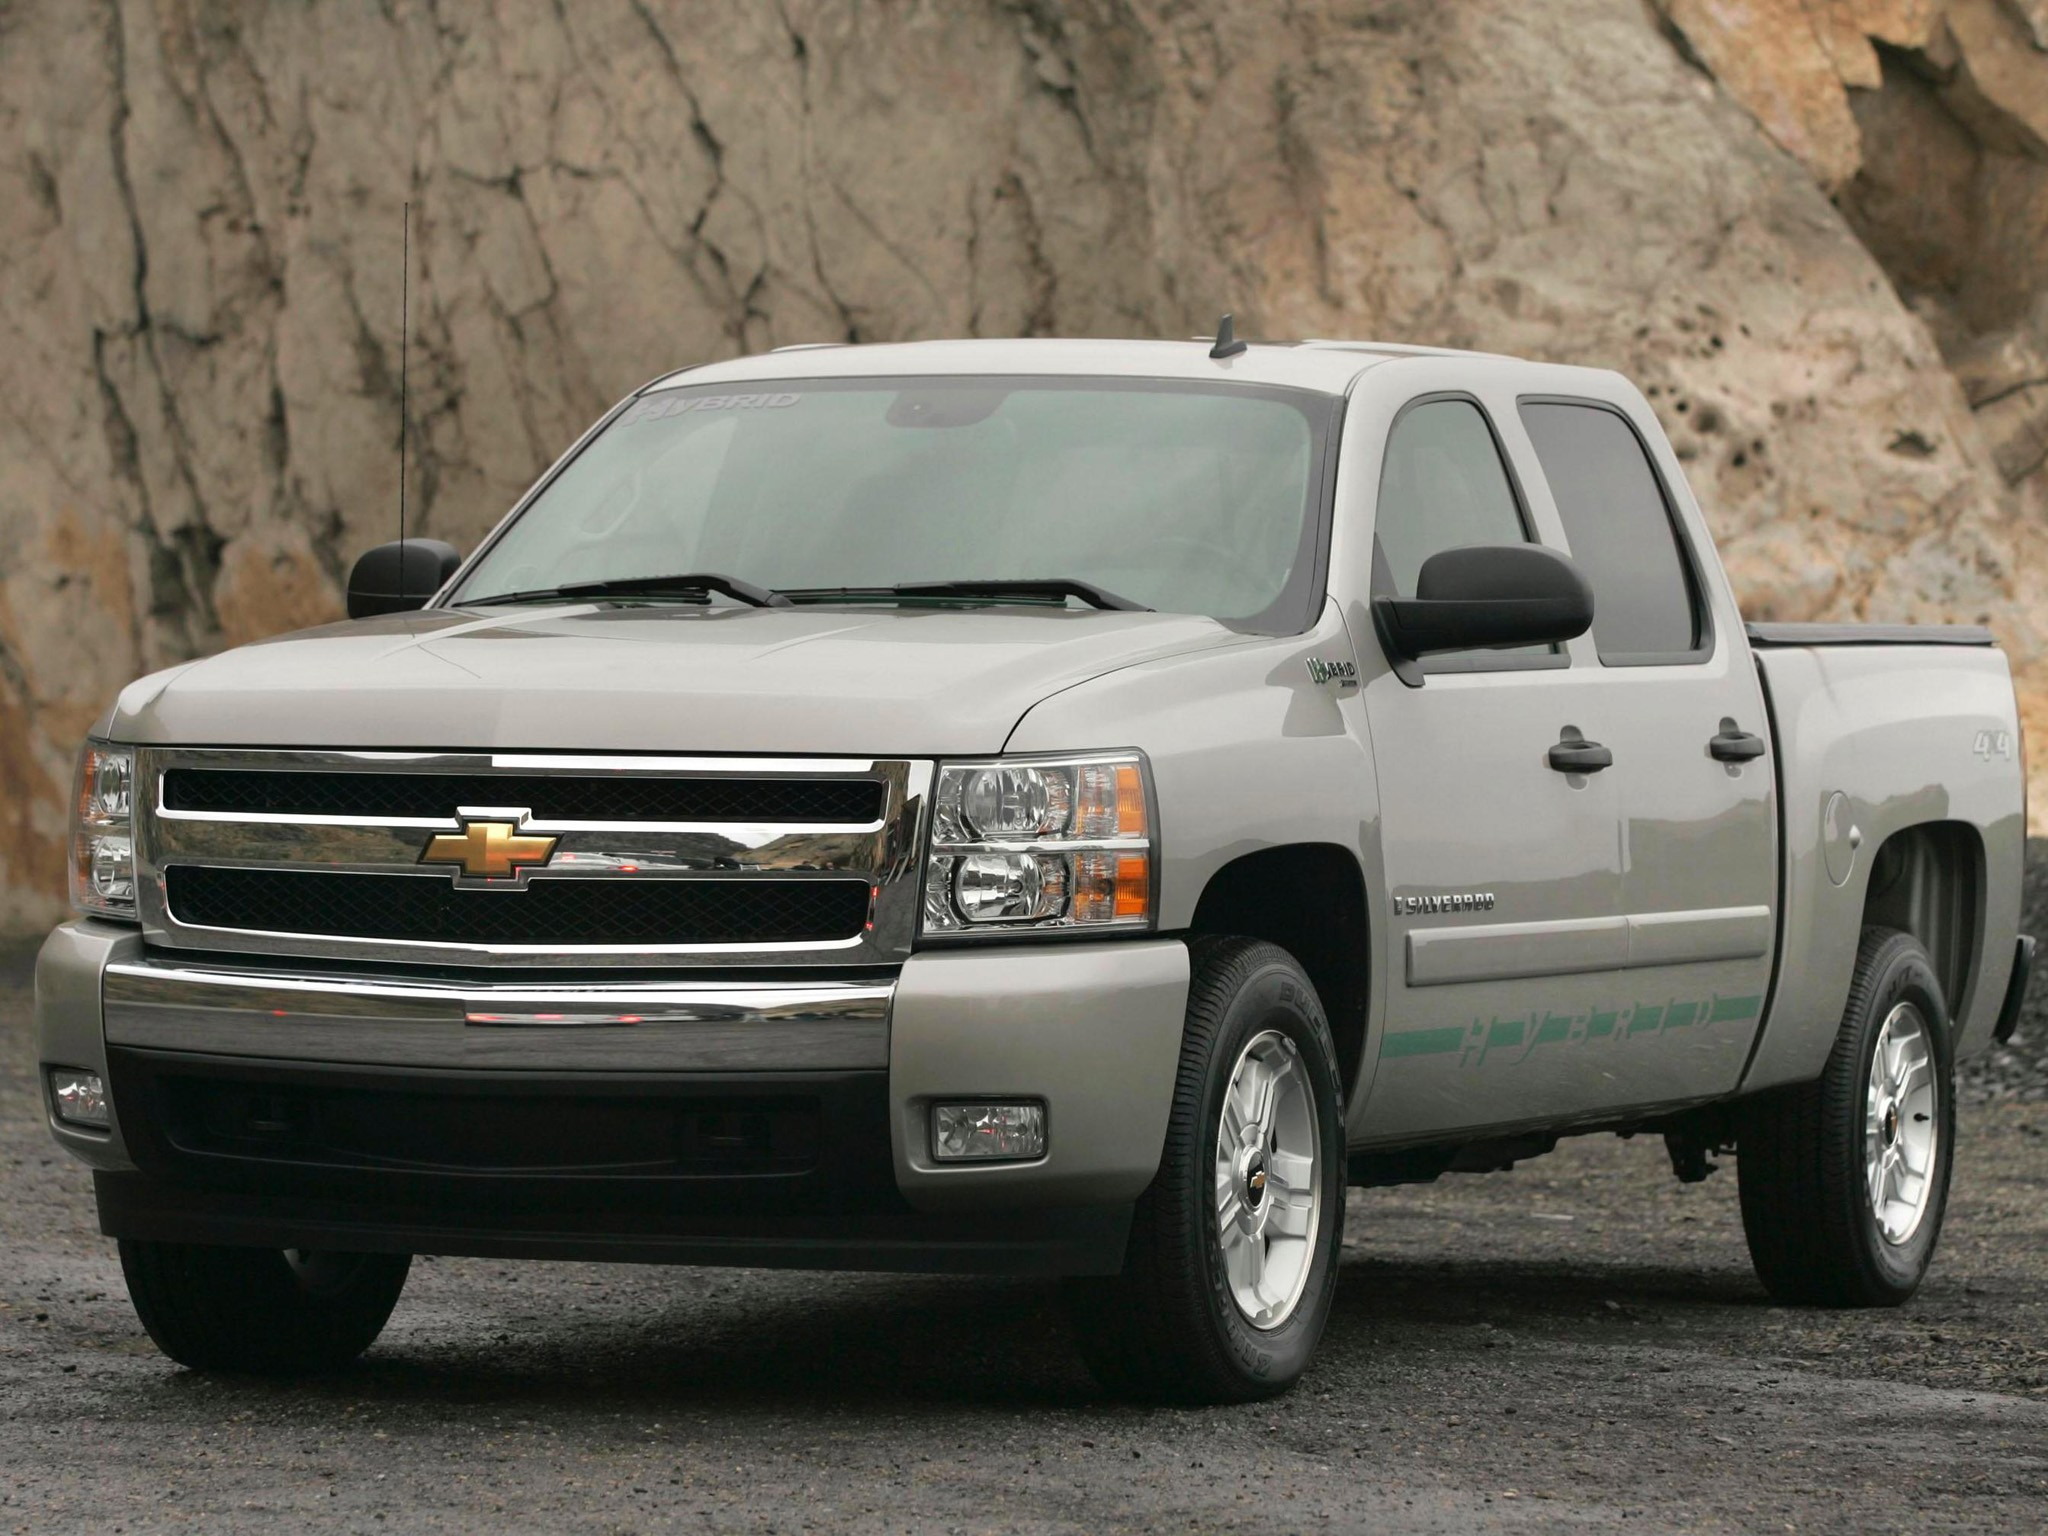 chevrolet silverado hybrid specs 2008 2009 2010 2011 2012 2013 autoevolution. Black Bedroom Furniture Sets. Home Design Ideas